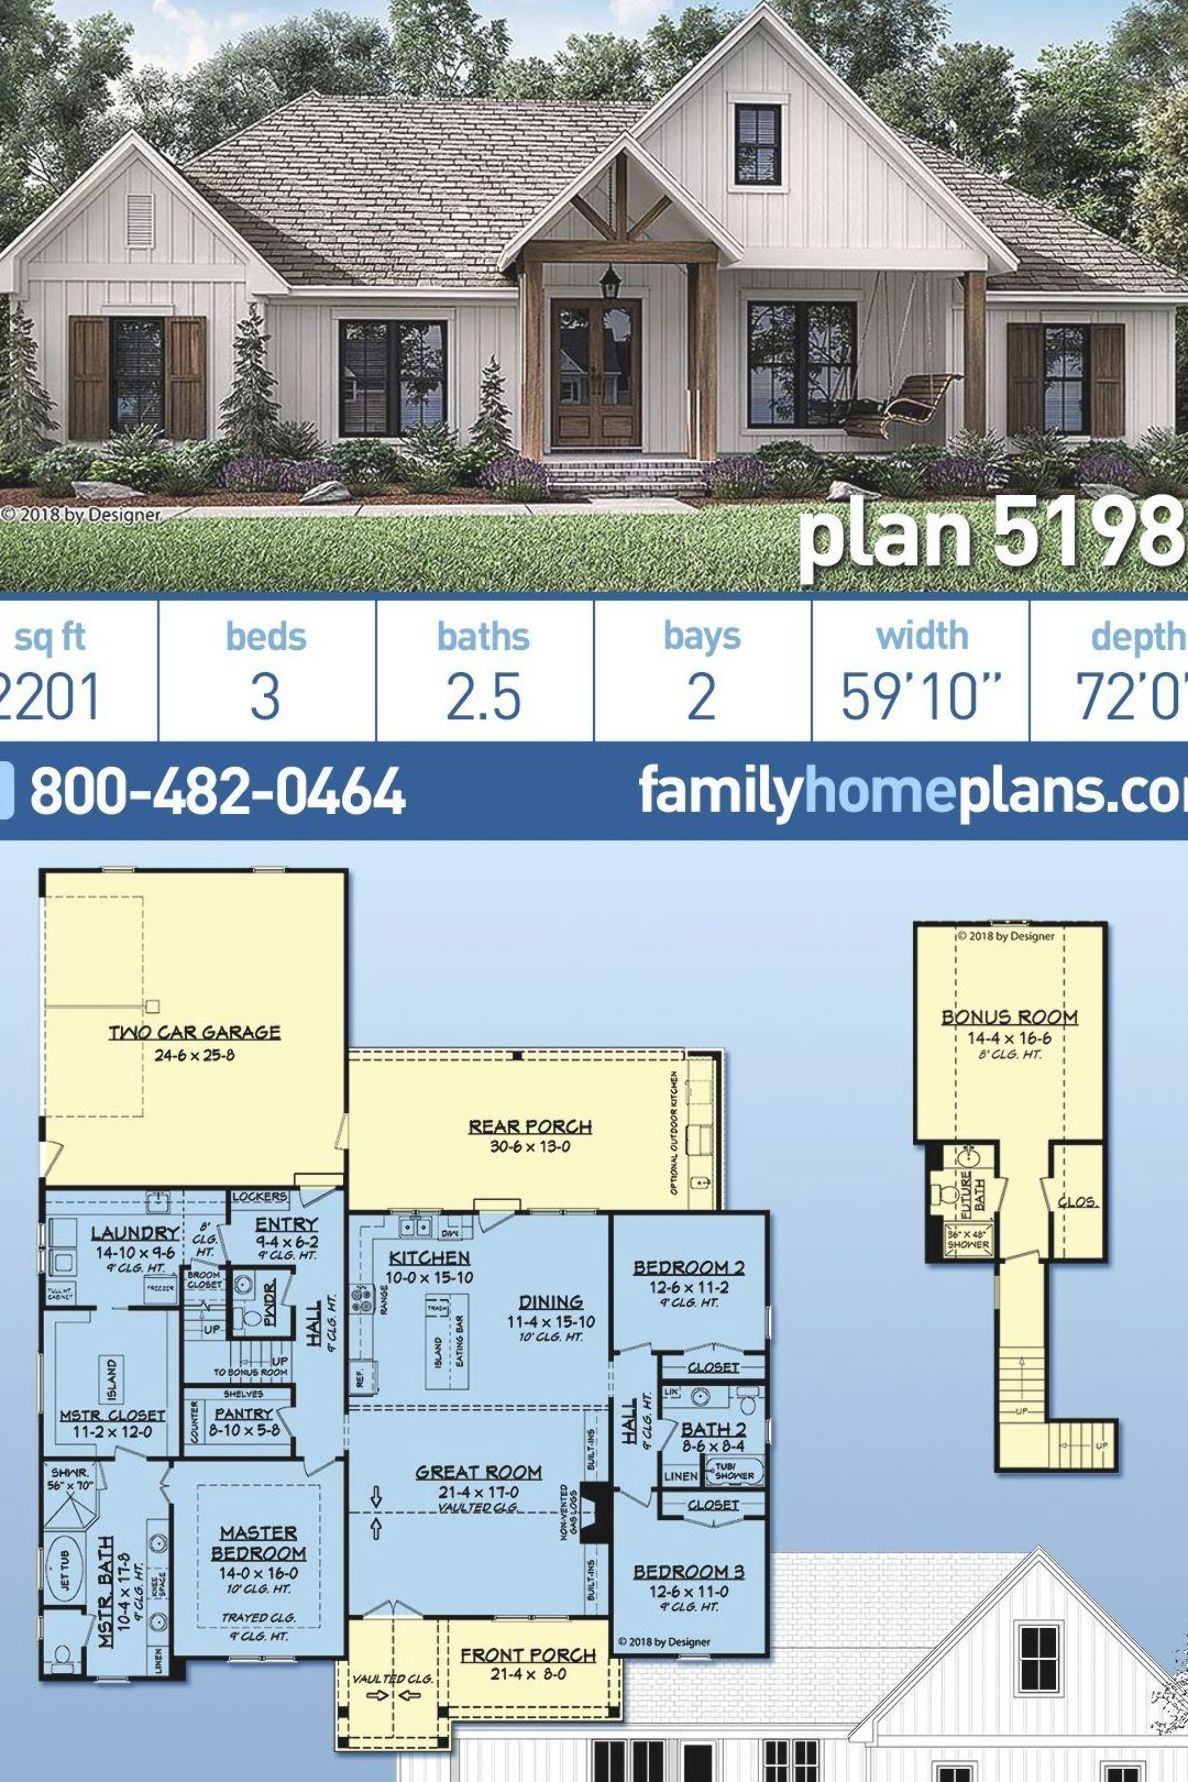 Country Home Plans 51984 House Plan Zone Specs And Features Include 2201 Square Feet 3 Bedrooms 2 5 Ba Family House Plans Craftsman House Dream House Plans